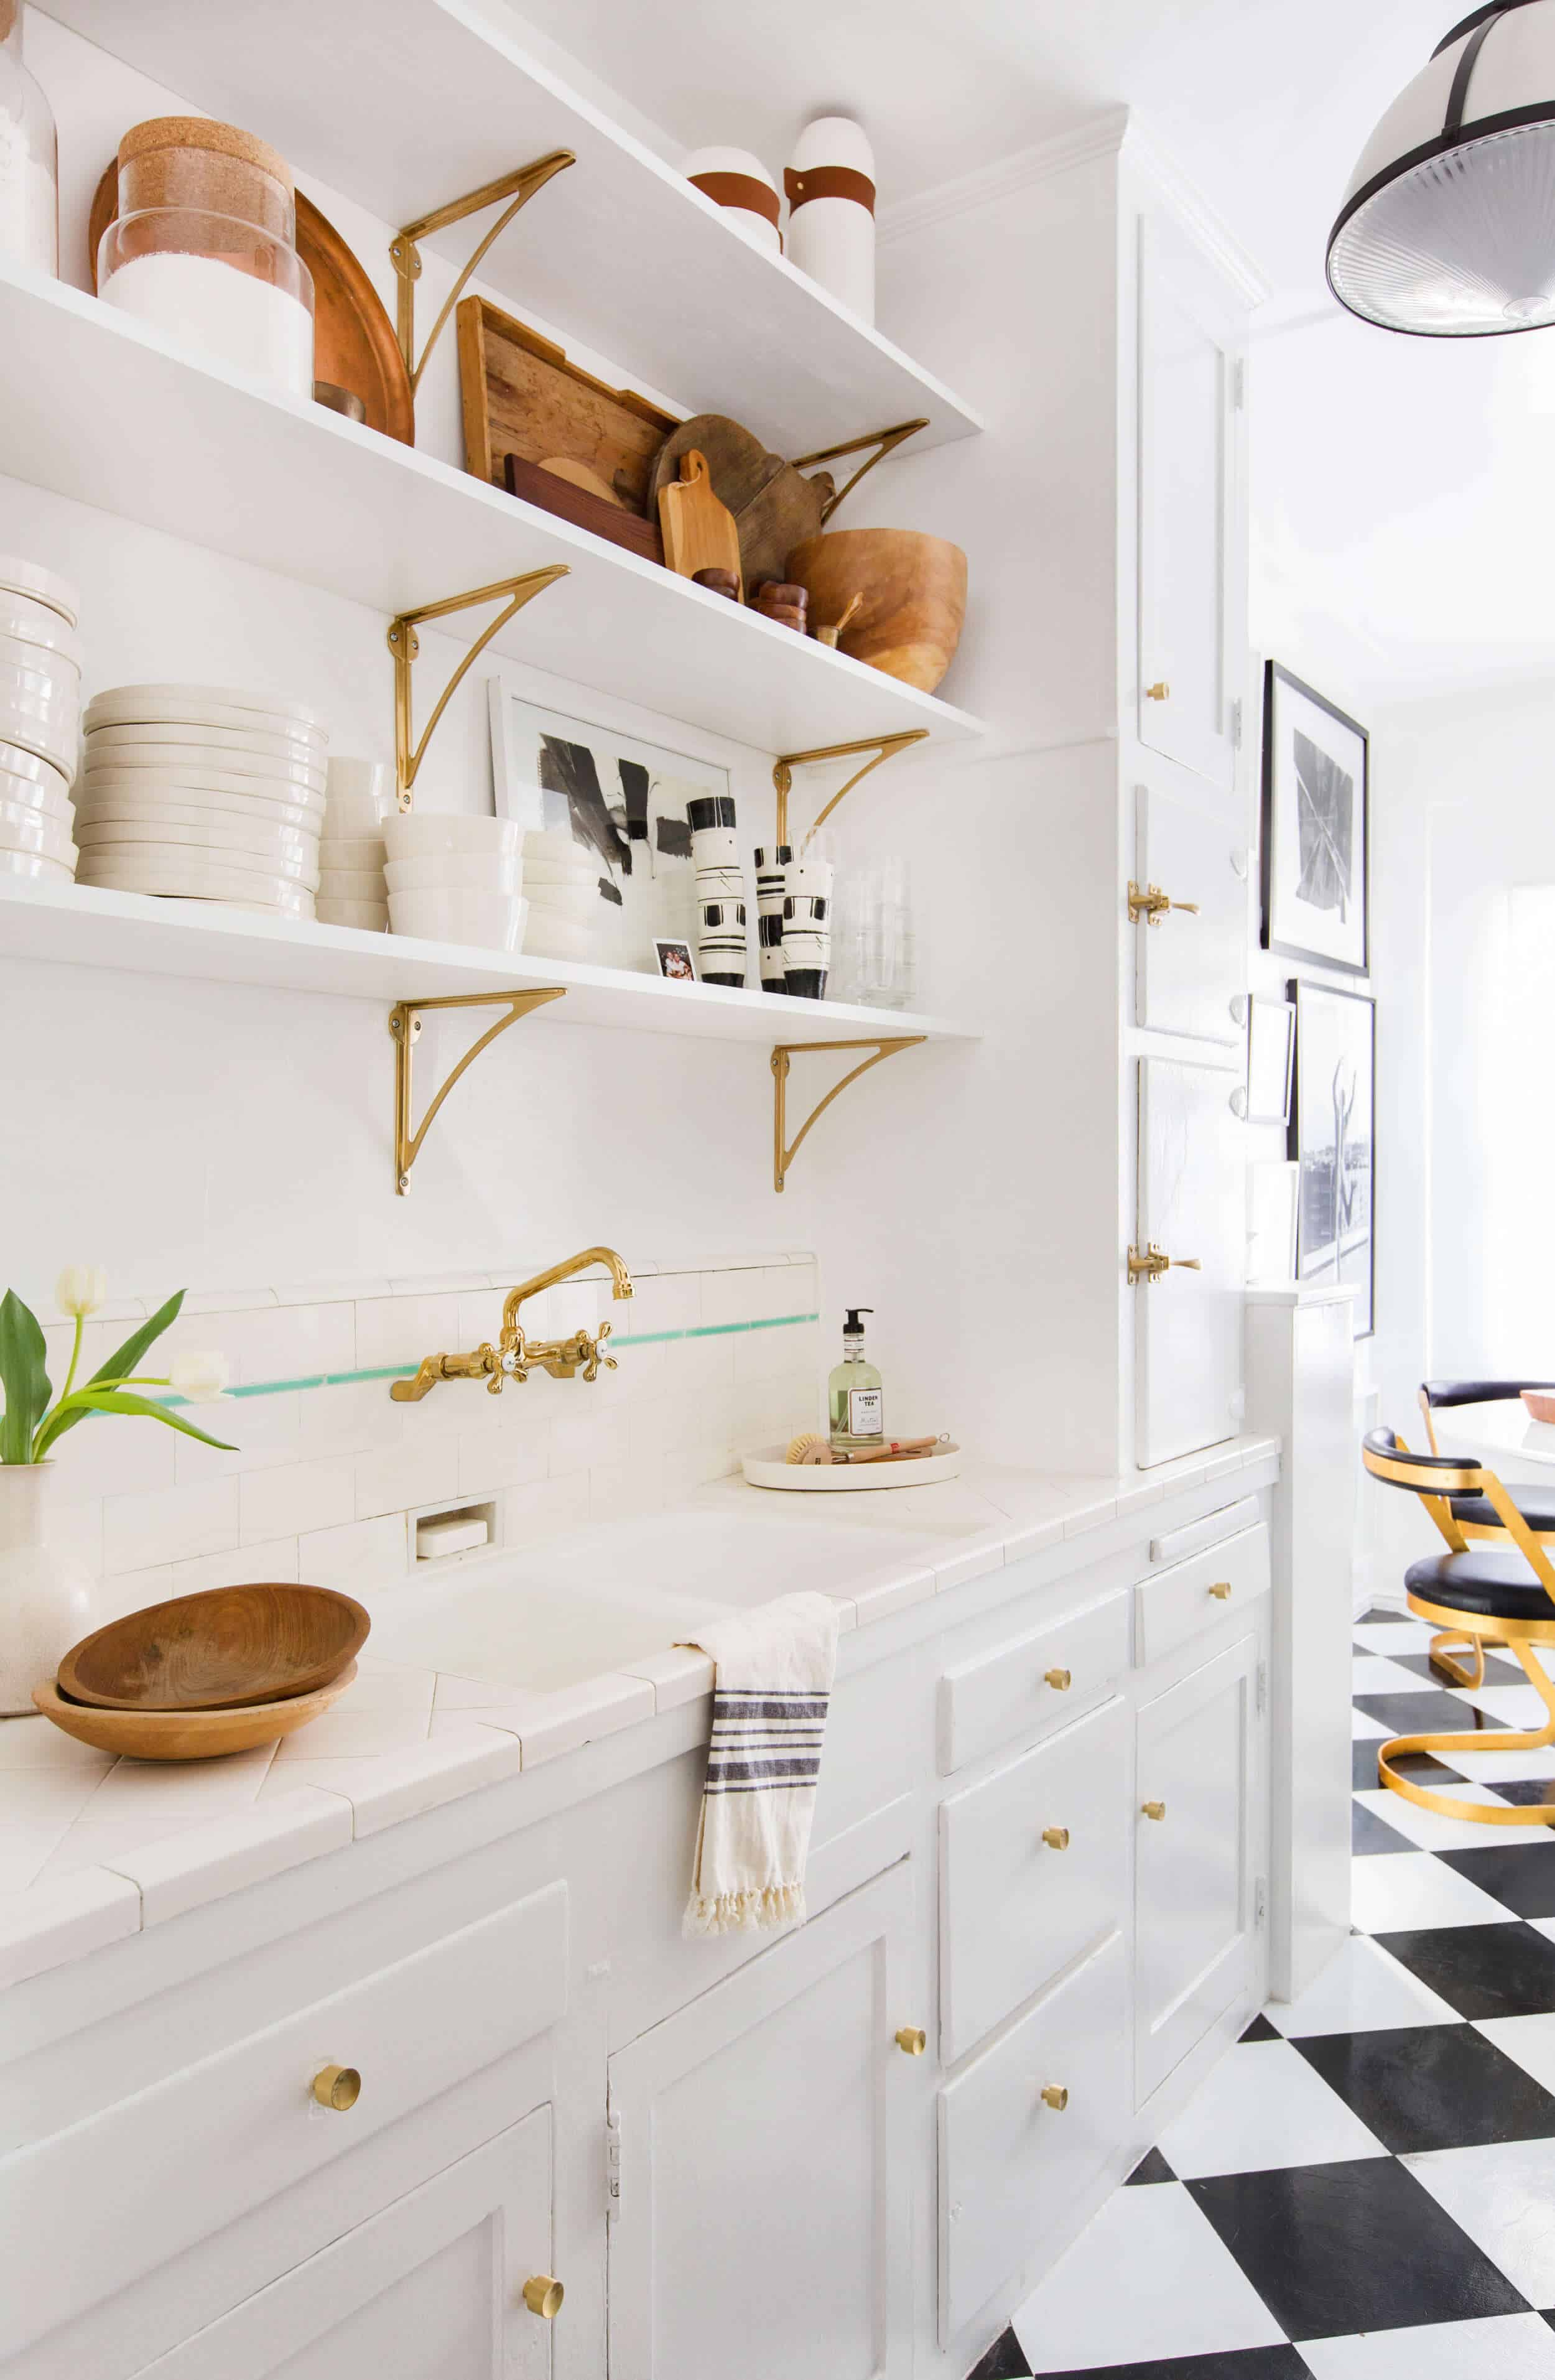 Brady-Tolbert_Emily-Henderson_Black-and-White-Kitchen_Vintage_Apartment-Refresh_Wood_Brass_Checkered-Floor_Copper-Pots_Eclectic_Glam_Modern_Traditional_19